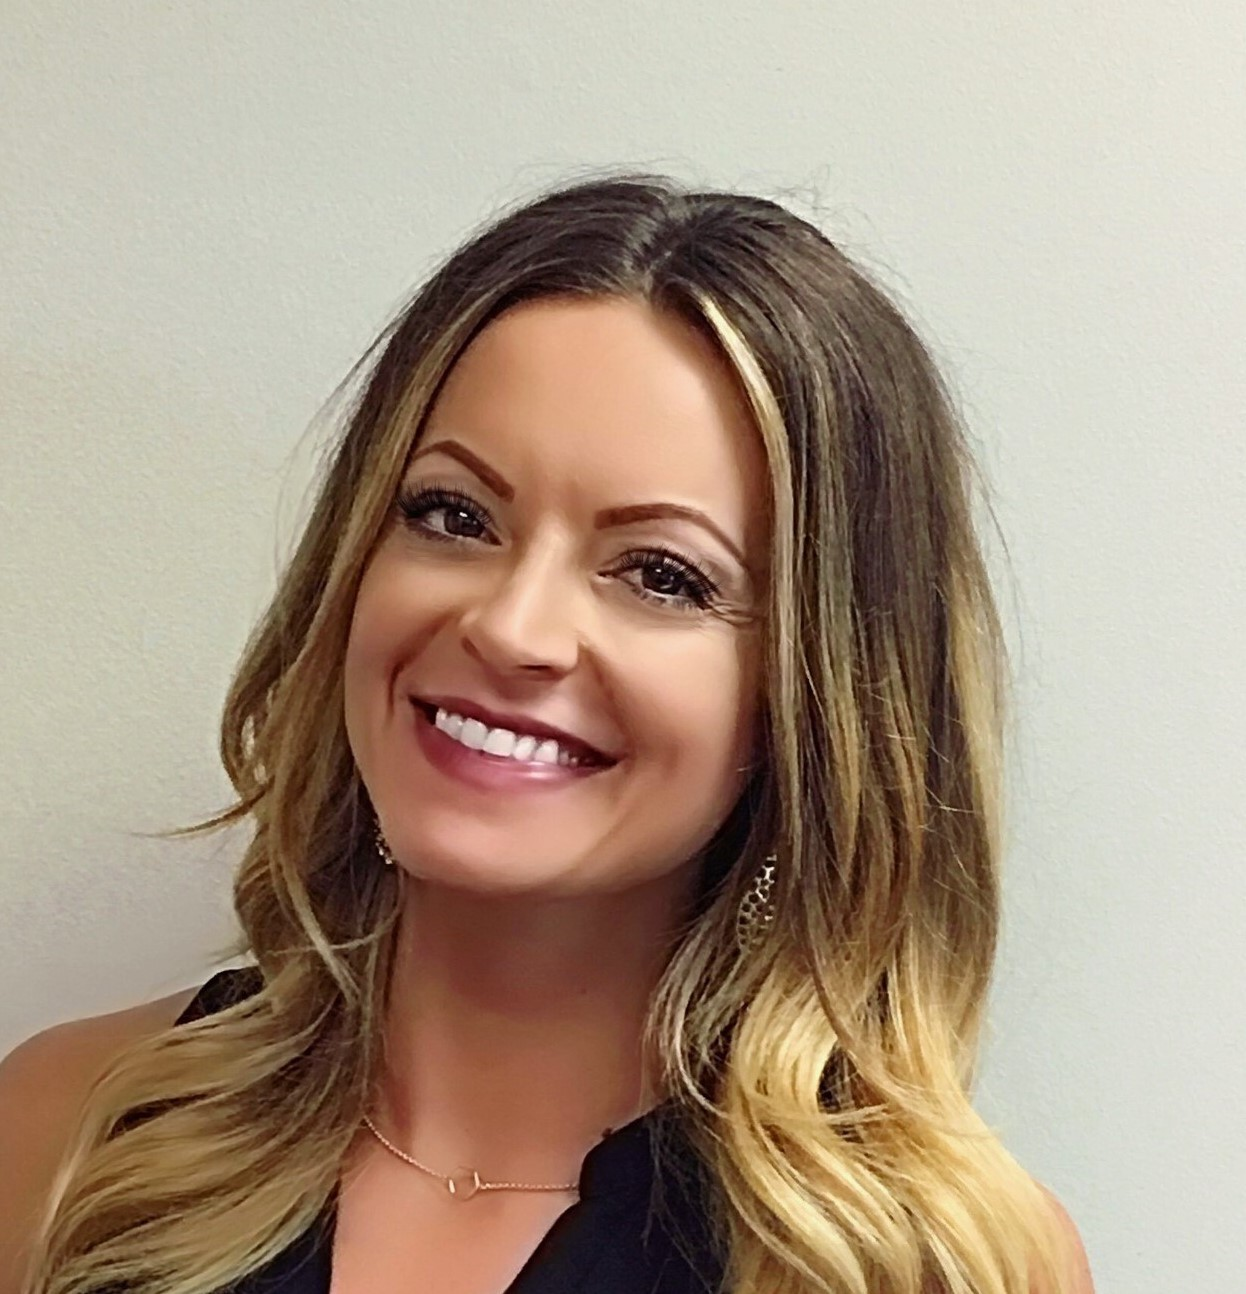 NHS Solutions hires Vee Glowczynski as Sales Support Specialist